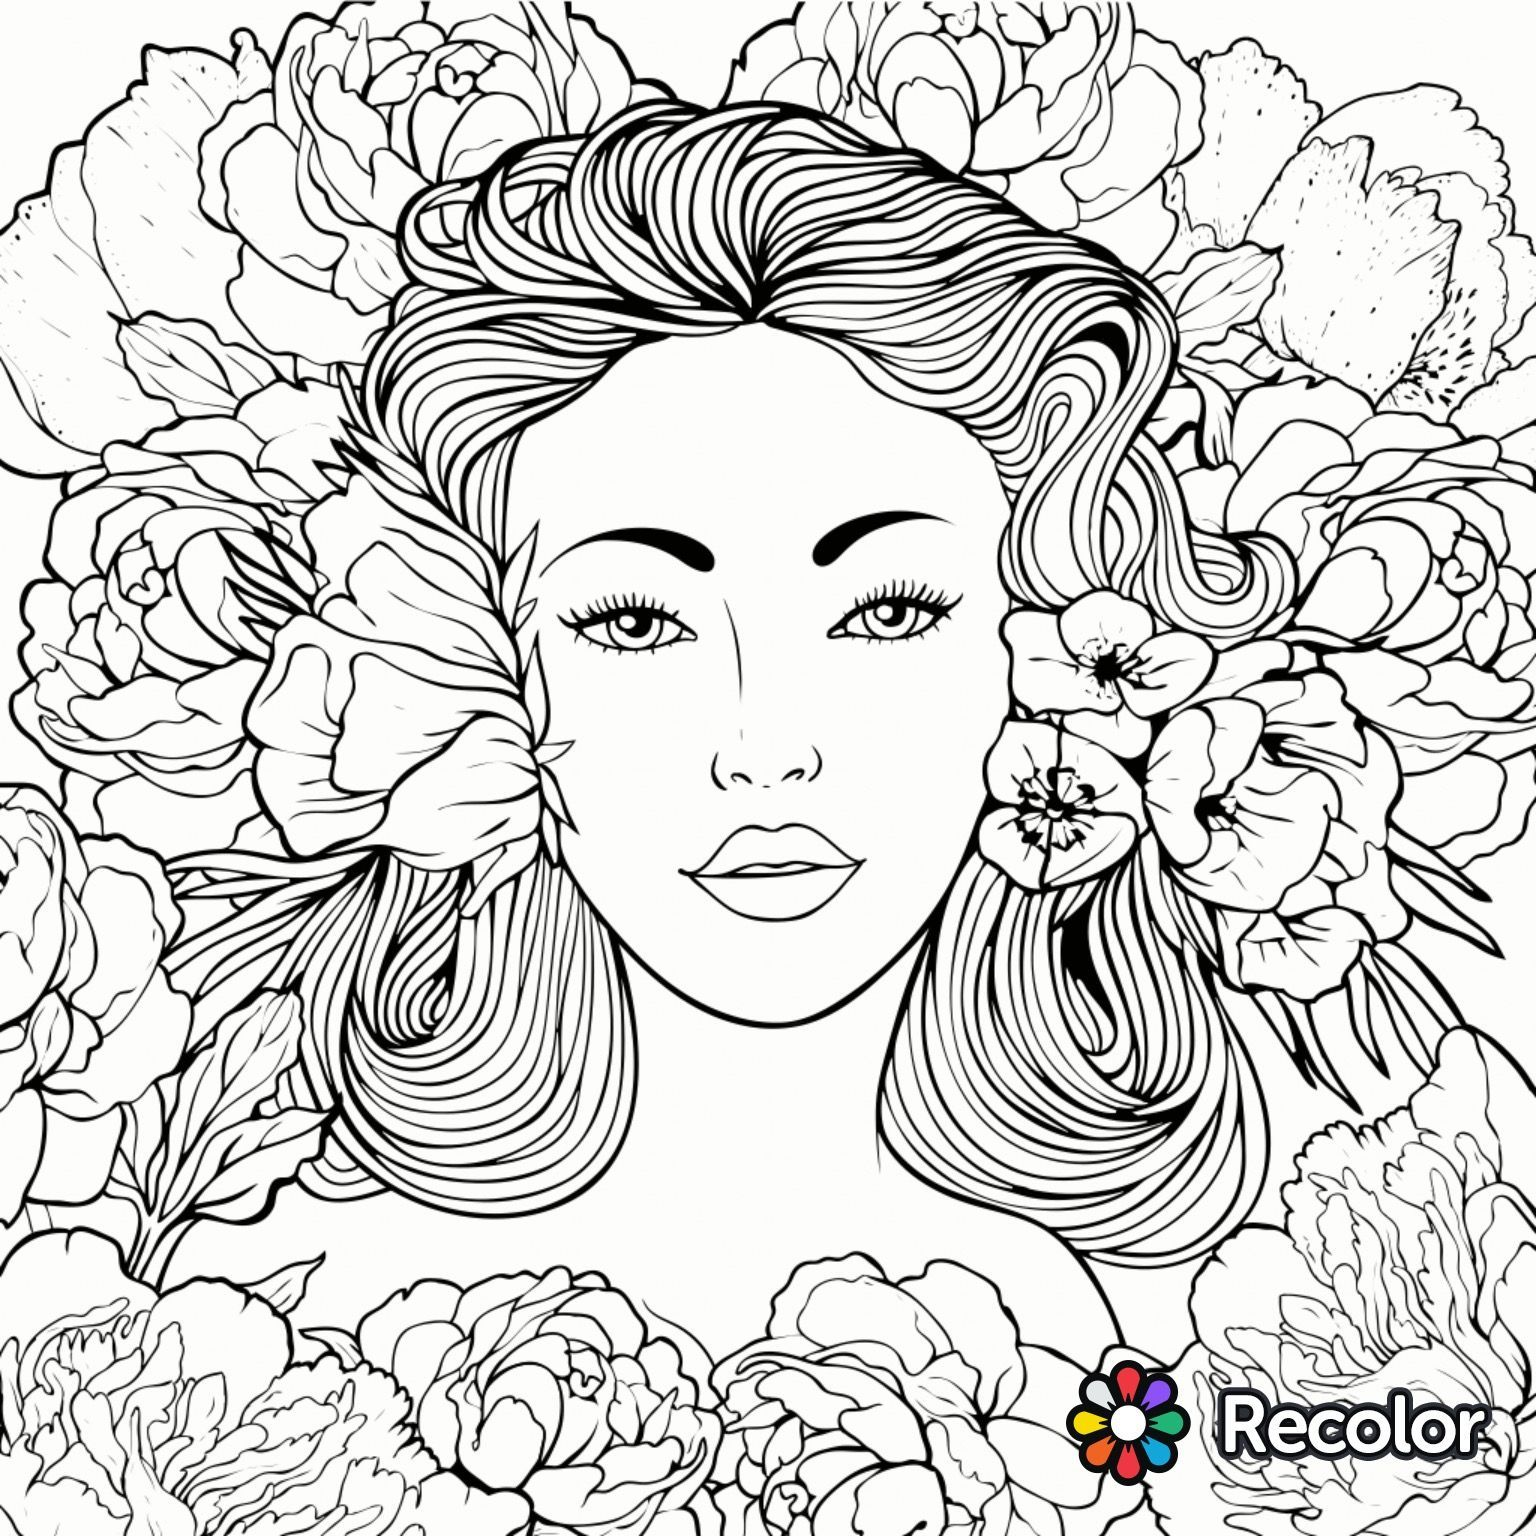 Compromise Recolor Coloring Pages Beauty Page App Beautiful Women Cute Coloring Pages Coloring Pages Fairy Coloring Pages